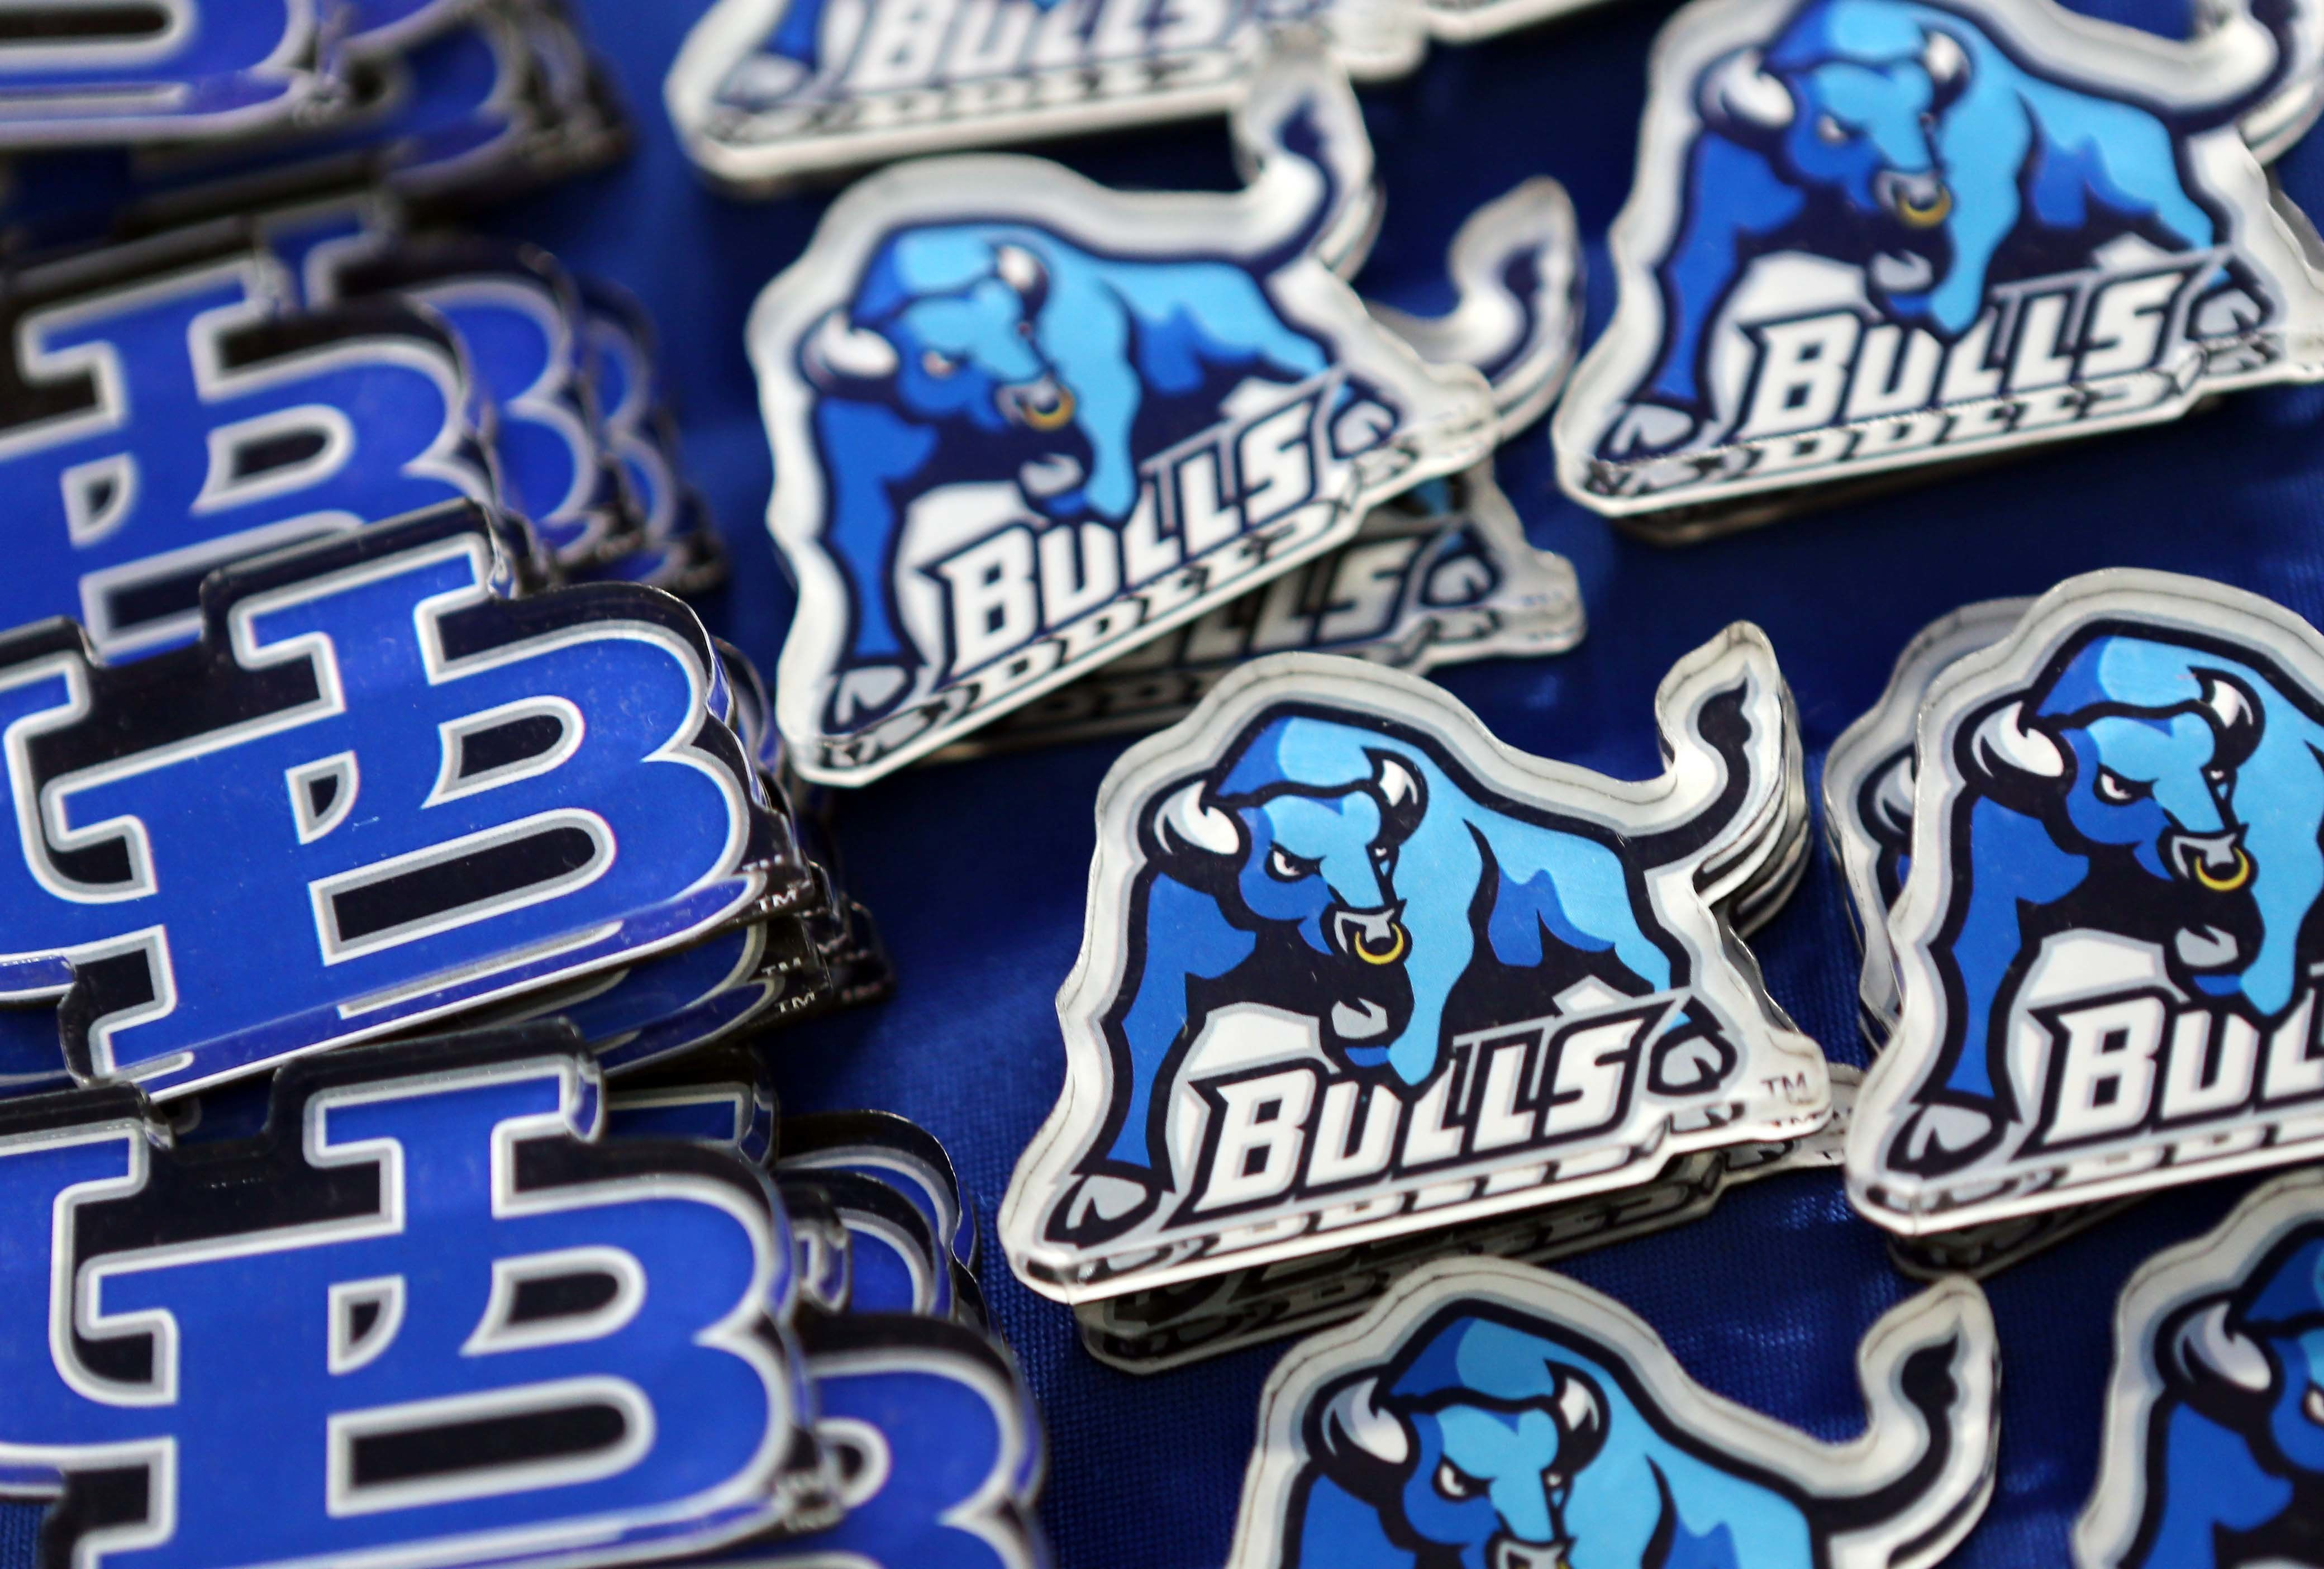 BUFFALO, NY - SEPTEMBER 12:  Buffalo Bulls pins for sale on the concourse prior to kickoff of the Baylor Bears and the Buffalo Bulls at UB Stadium on September 12, 2014 in Buffalo, New York.  (Photo by Vaughn Ridley/Getty Images)